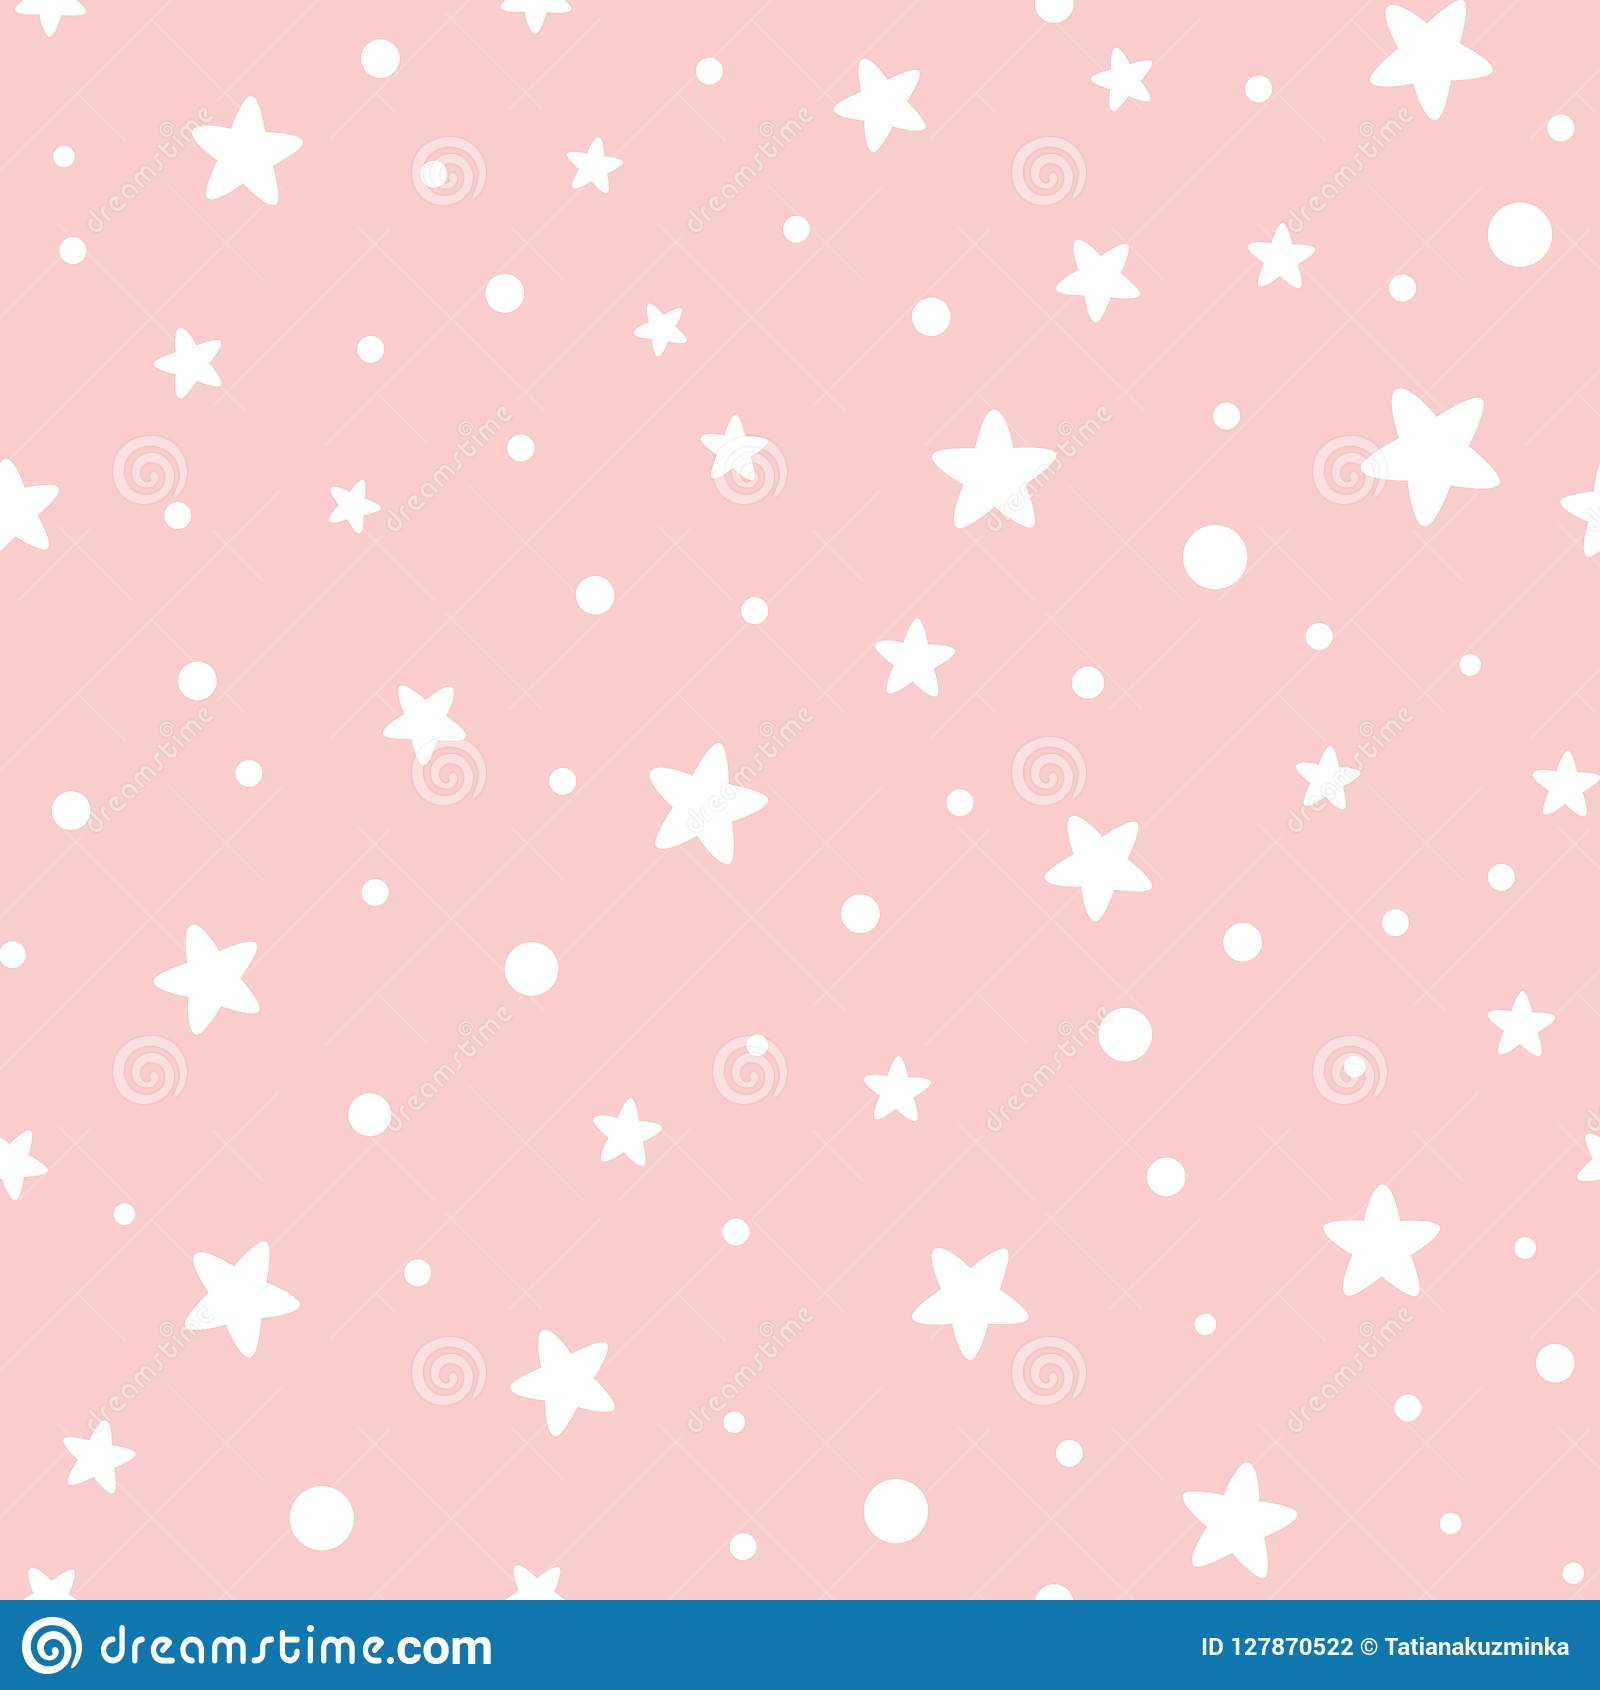 Pink Seamless Pattern Stars Geometric Pink Ornamental Background Baby Shower Sweet Girl Background Stock Vector Illustration Of Invite Cloth 127870522